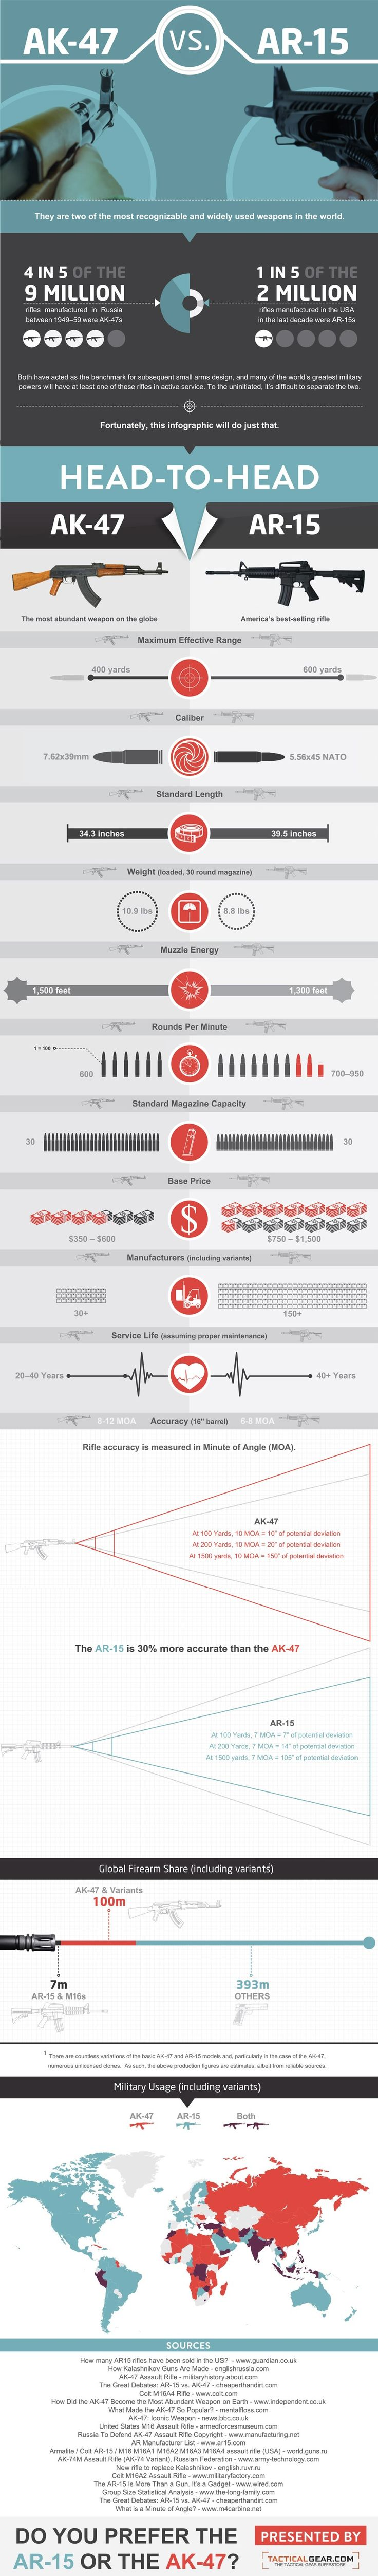 AK-47 vs. AR-15 The Small Arms Showdown infographic   Love infographicsSubmit & share infographics - Infographics Submission Site & Community